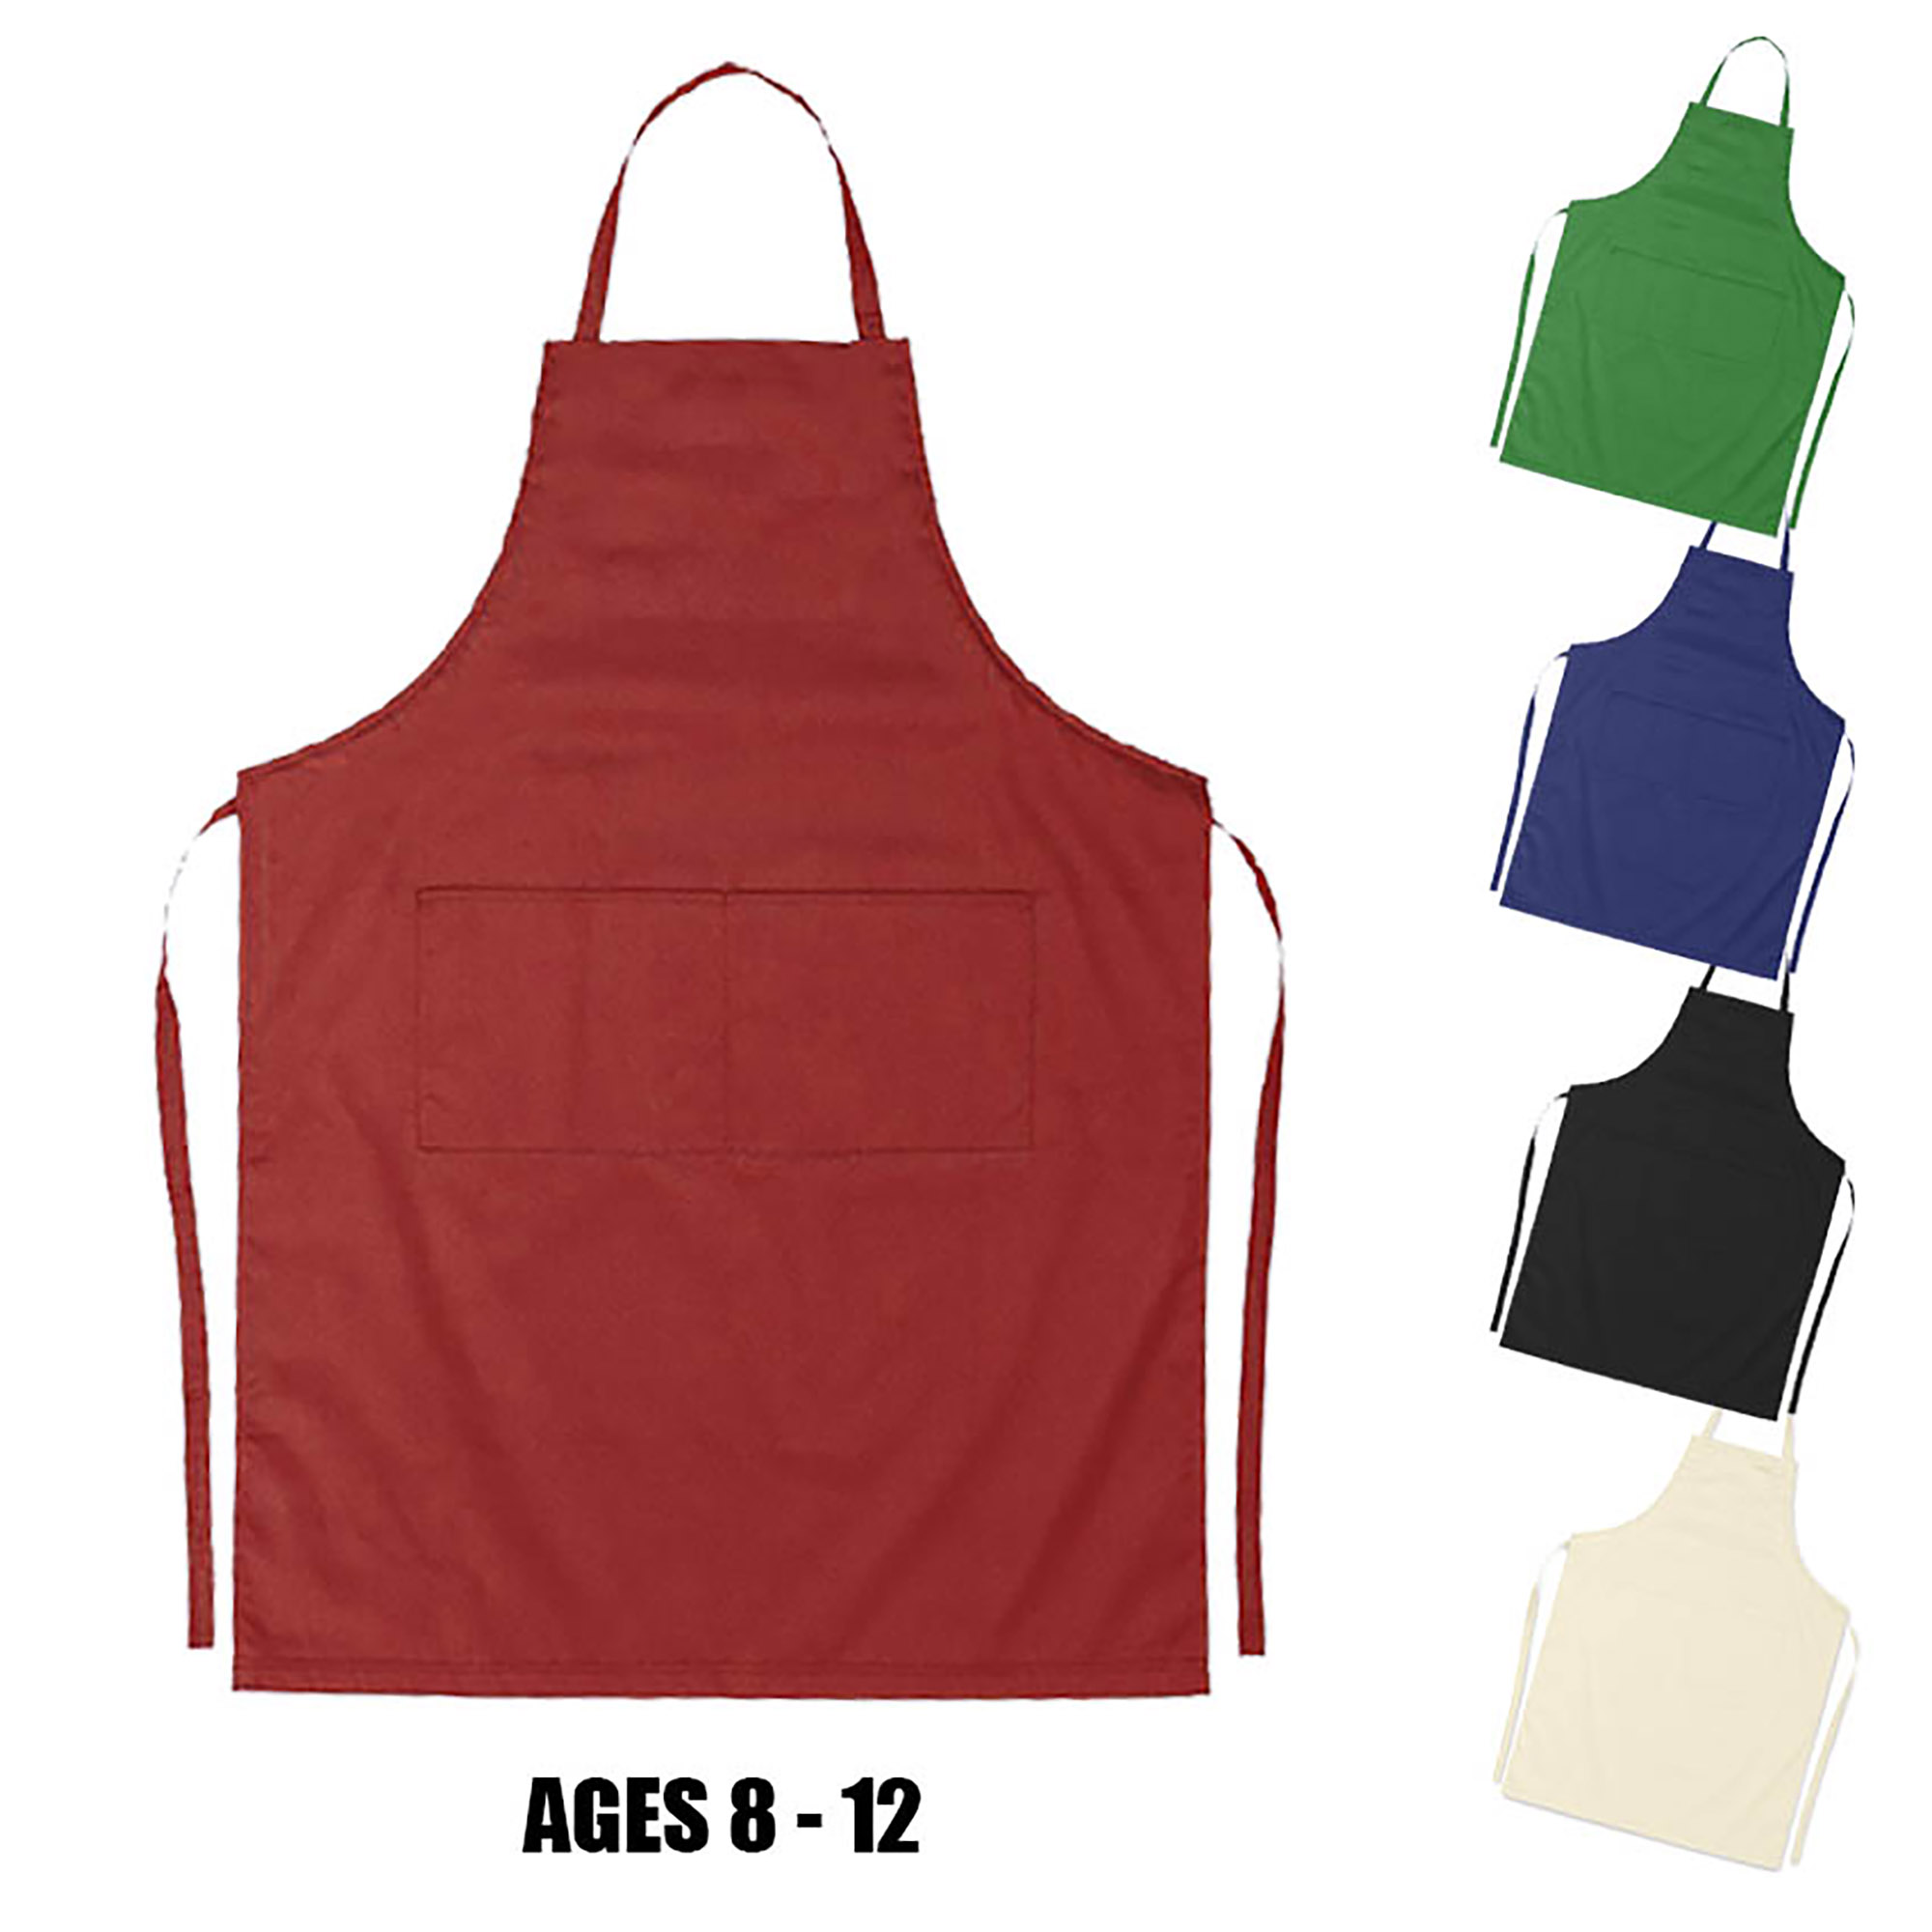 JUNIOR COTTON APRON (age: 8-12) - 1 Colour Print